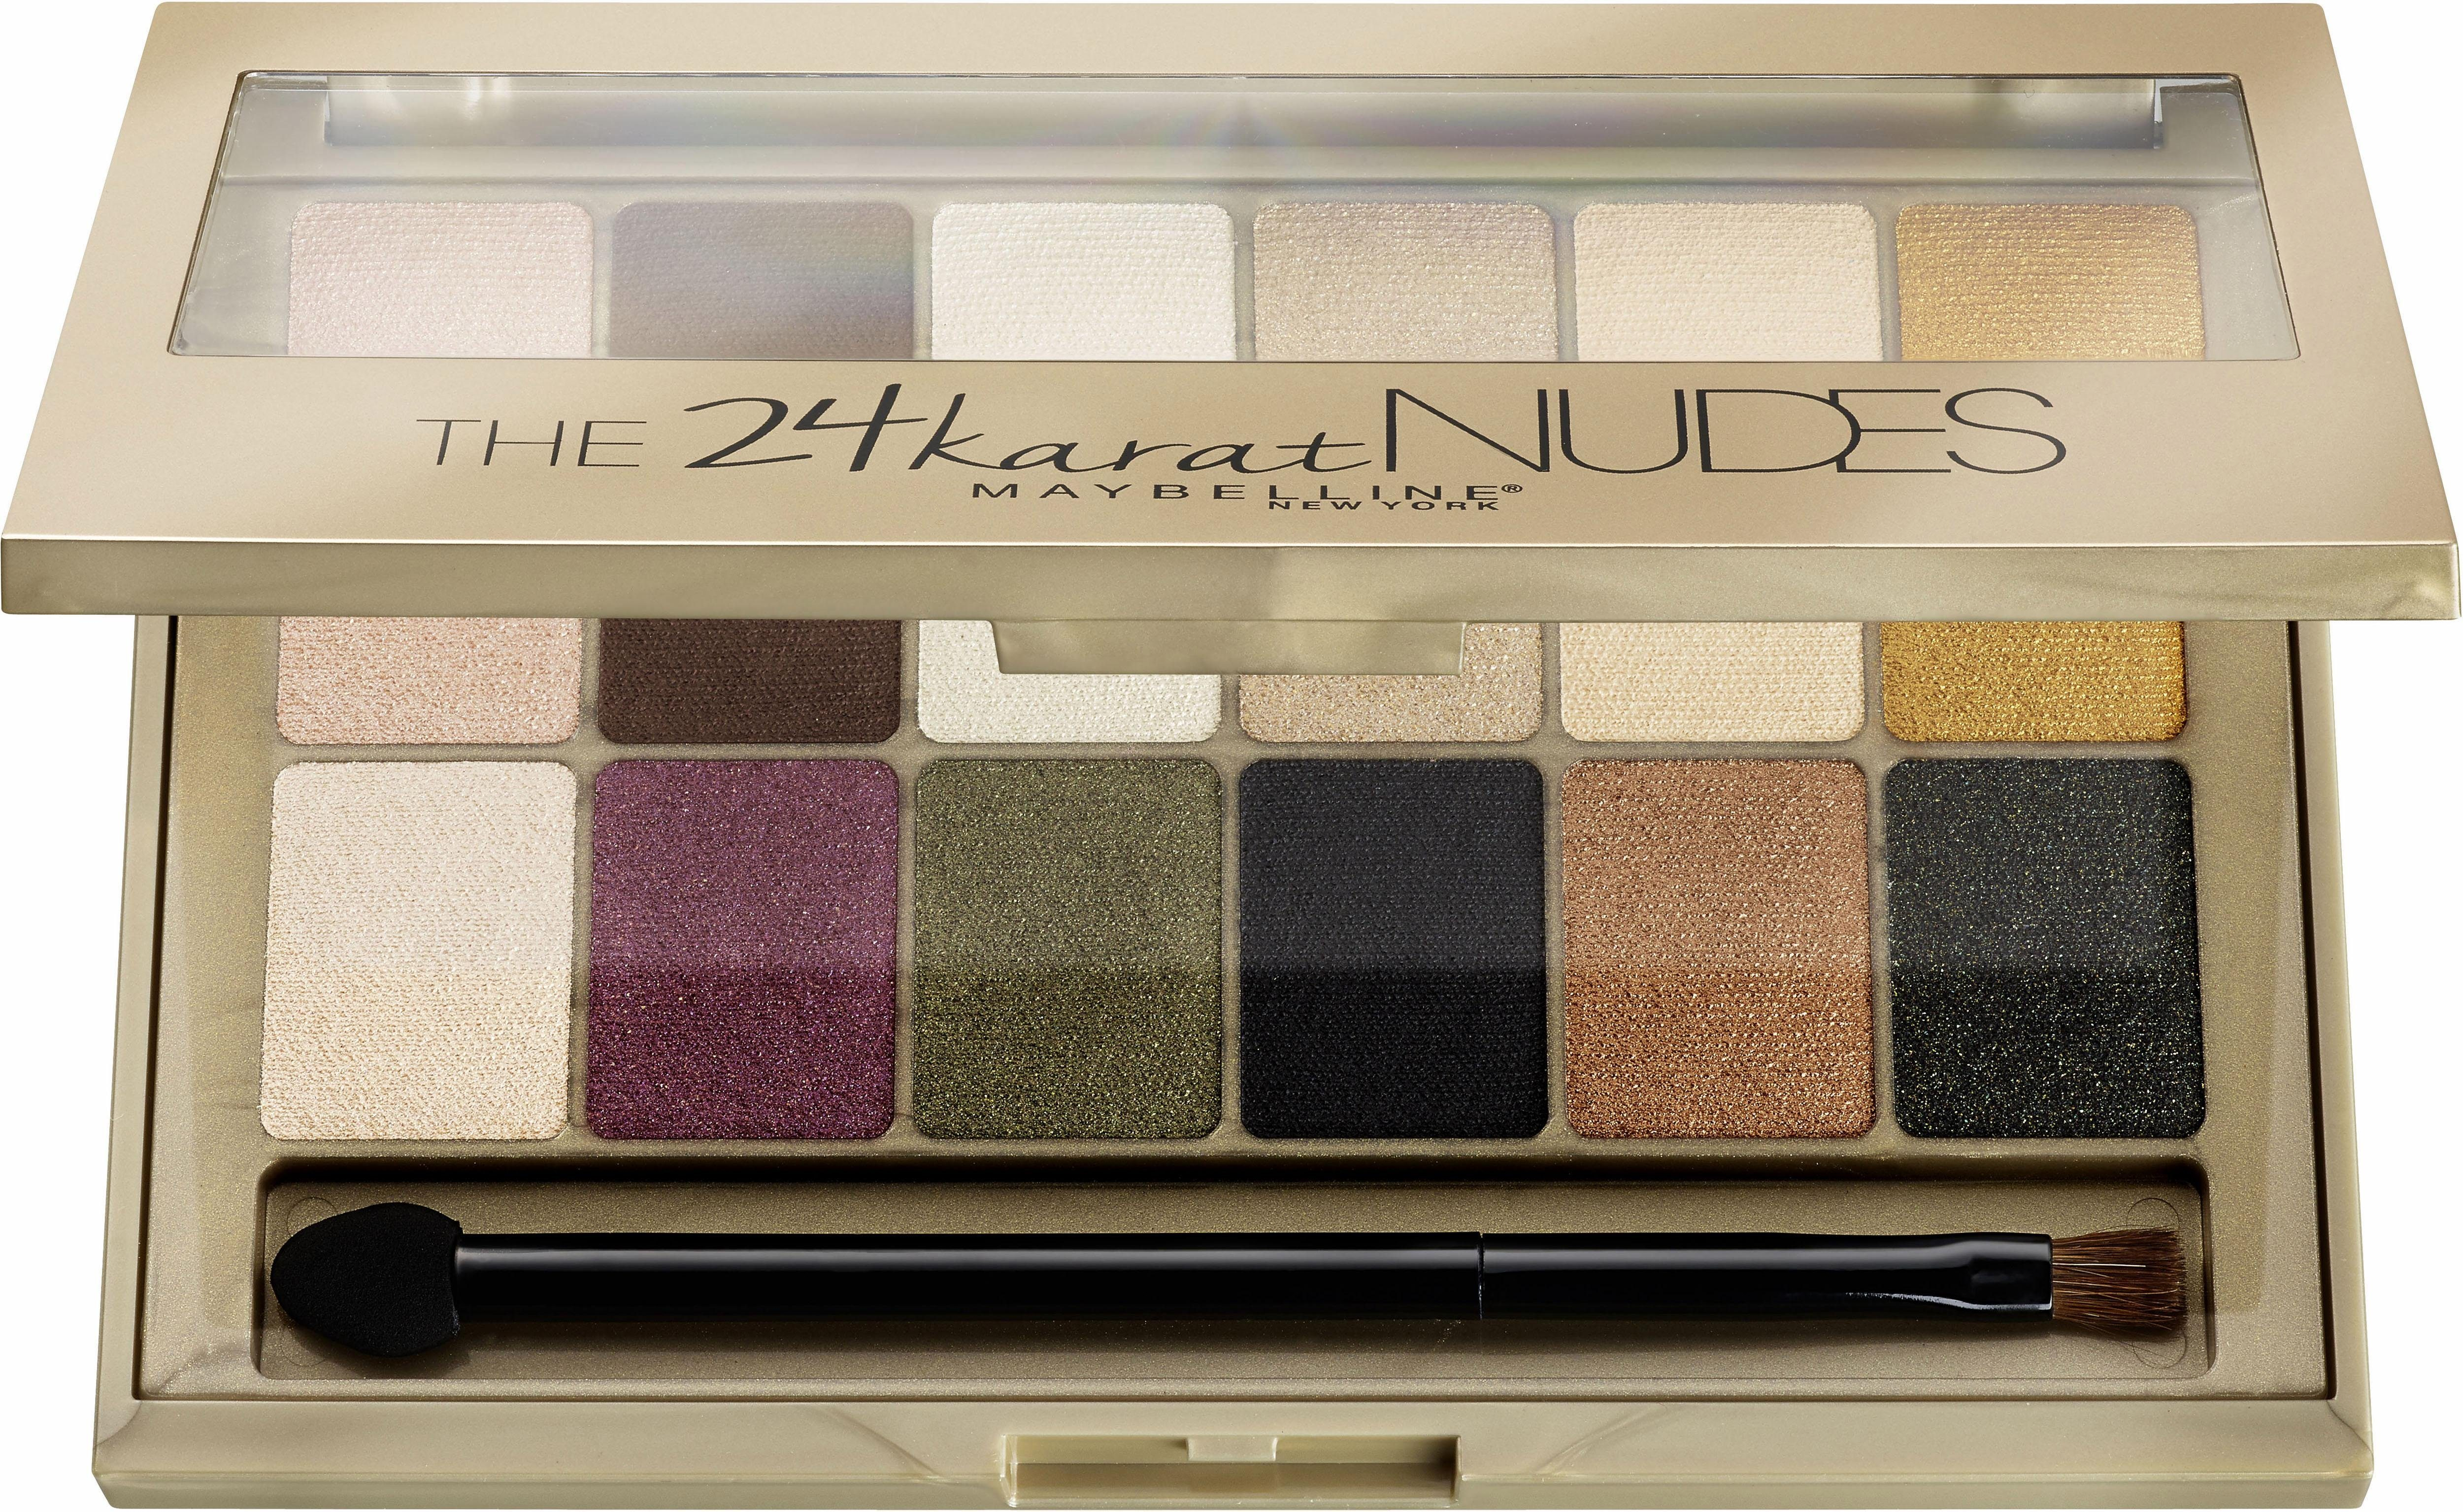 Maybelline New York, »The Karat Nudes Palette«, Lidschatten